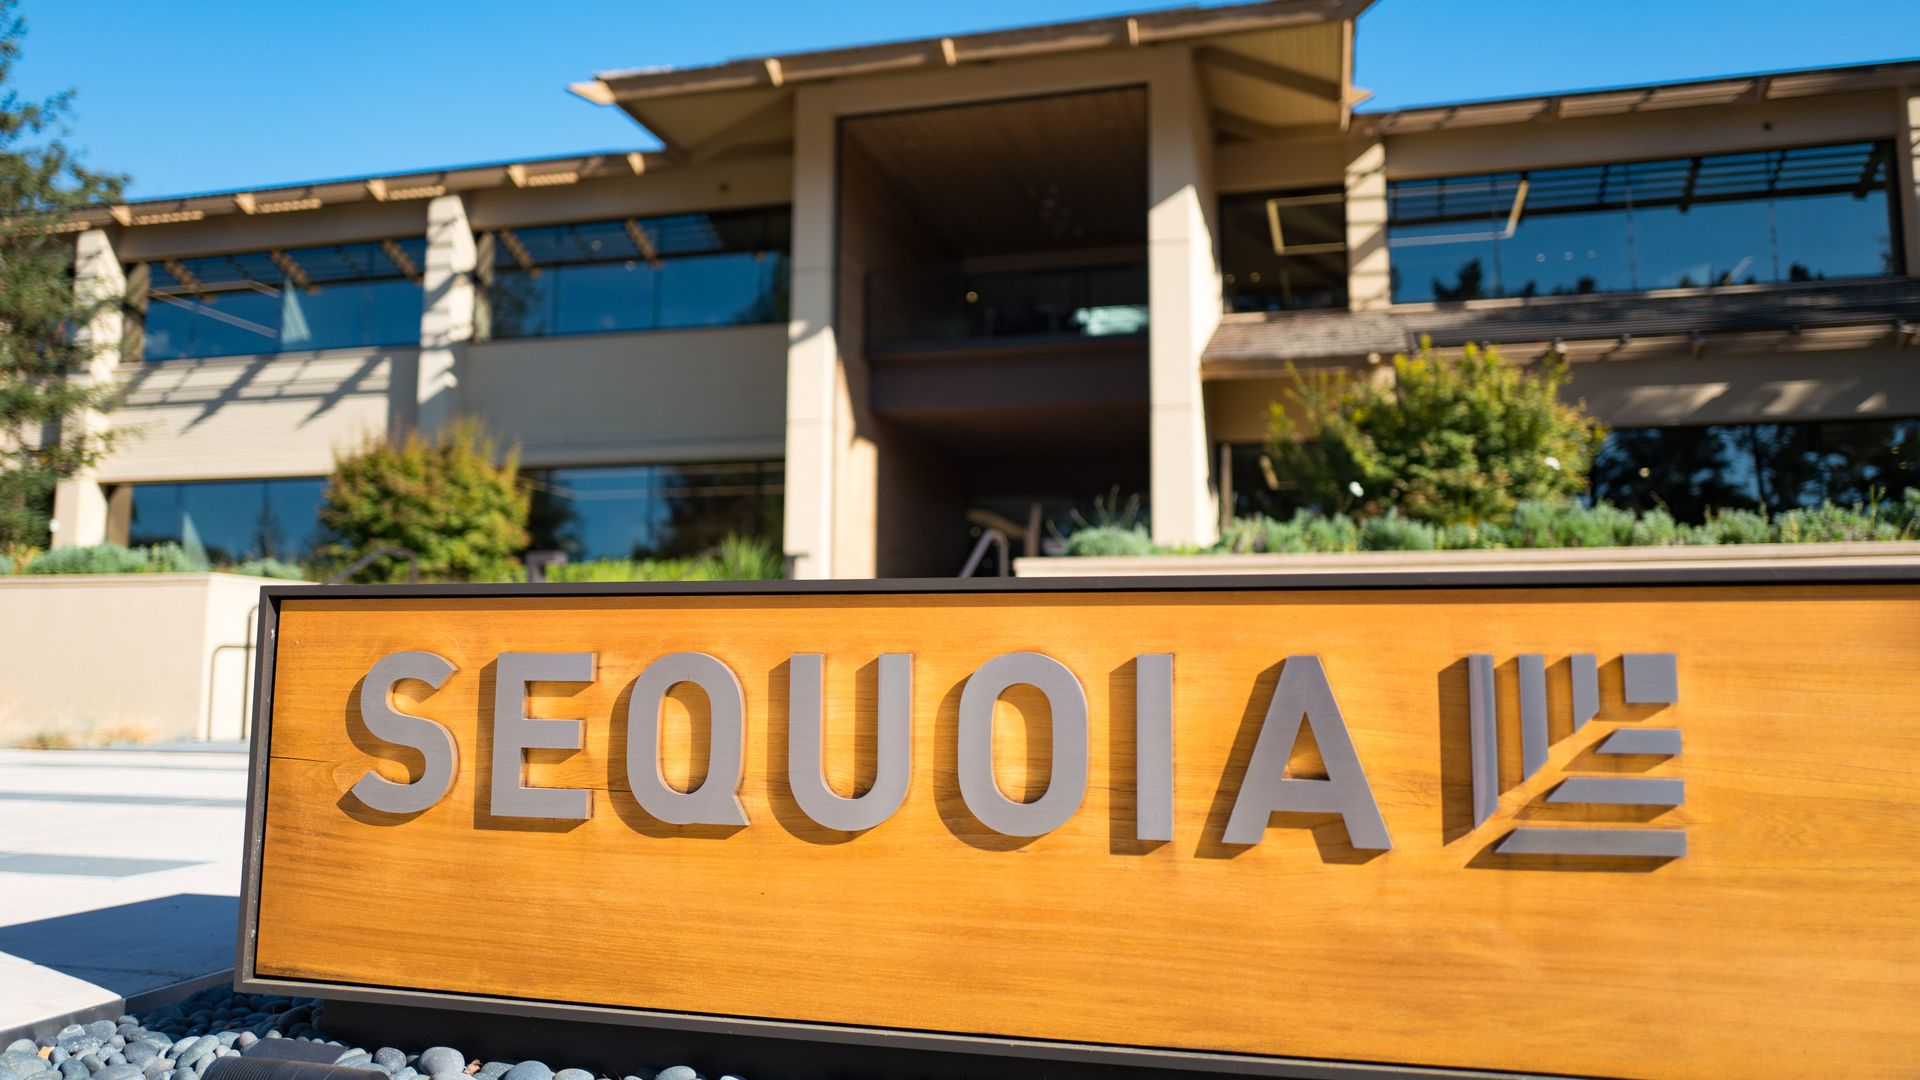 Sequoia Capital offices on Sand Hill Road in Menlo Park, California.